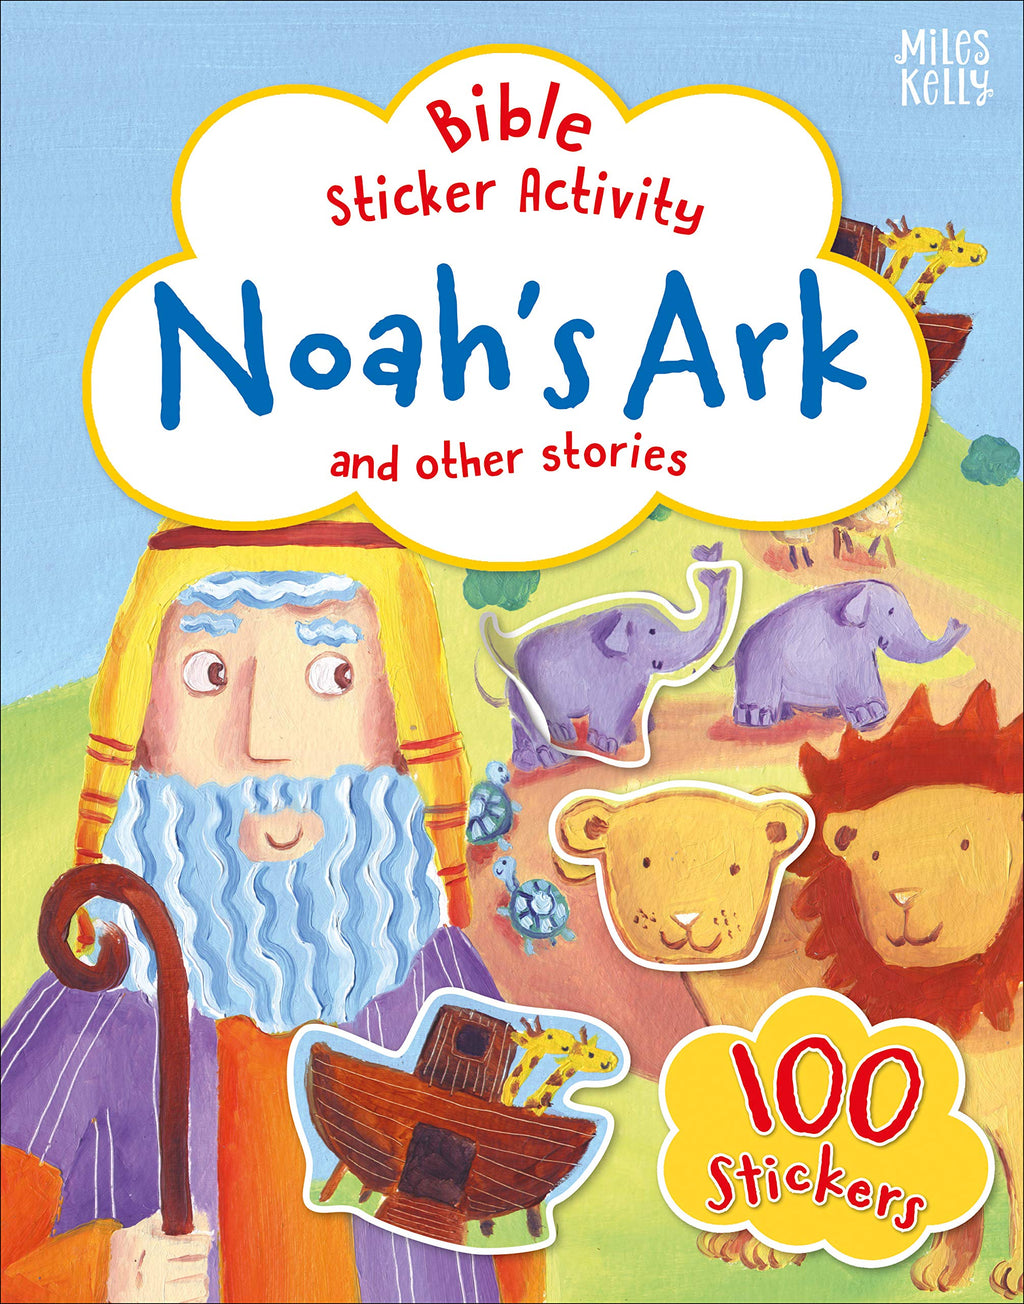 Bible Sticker Activity: Noah's Ark